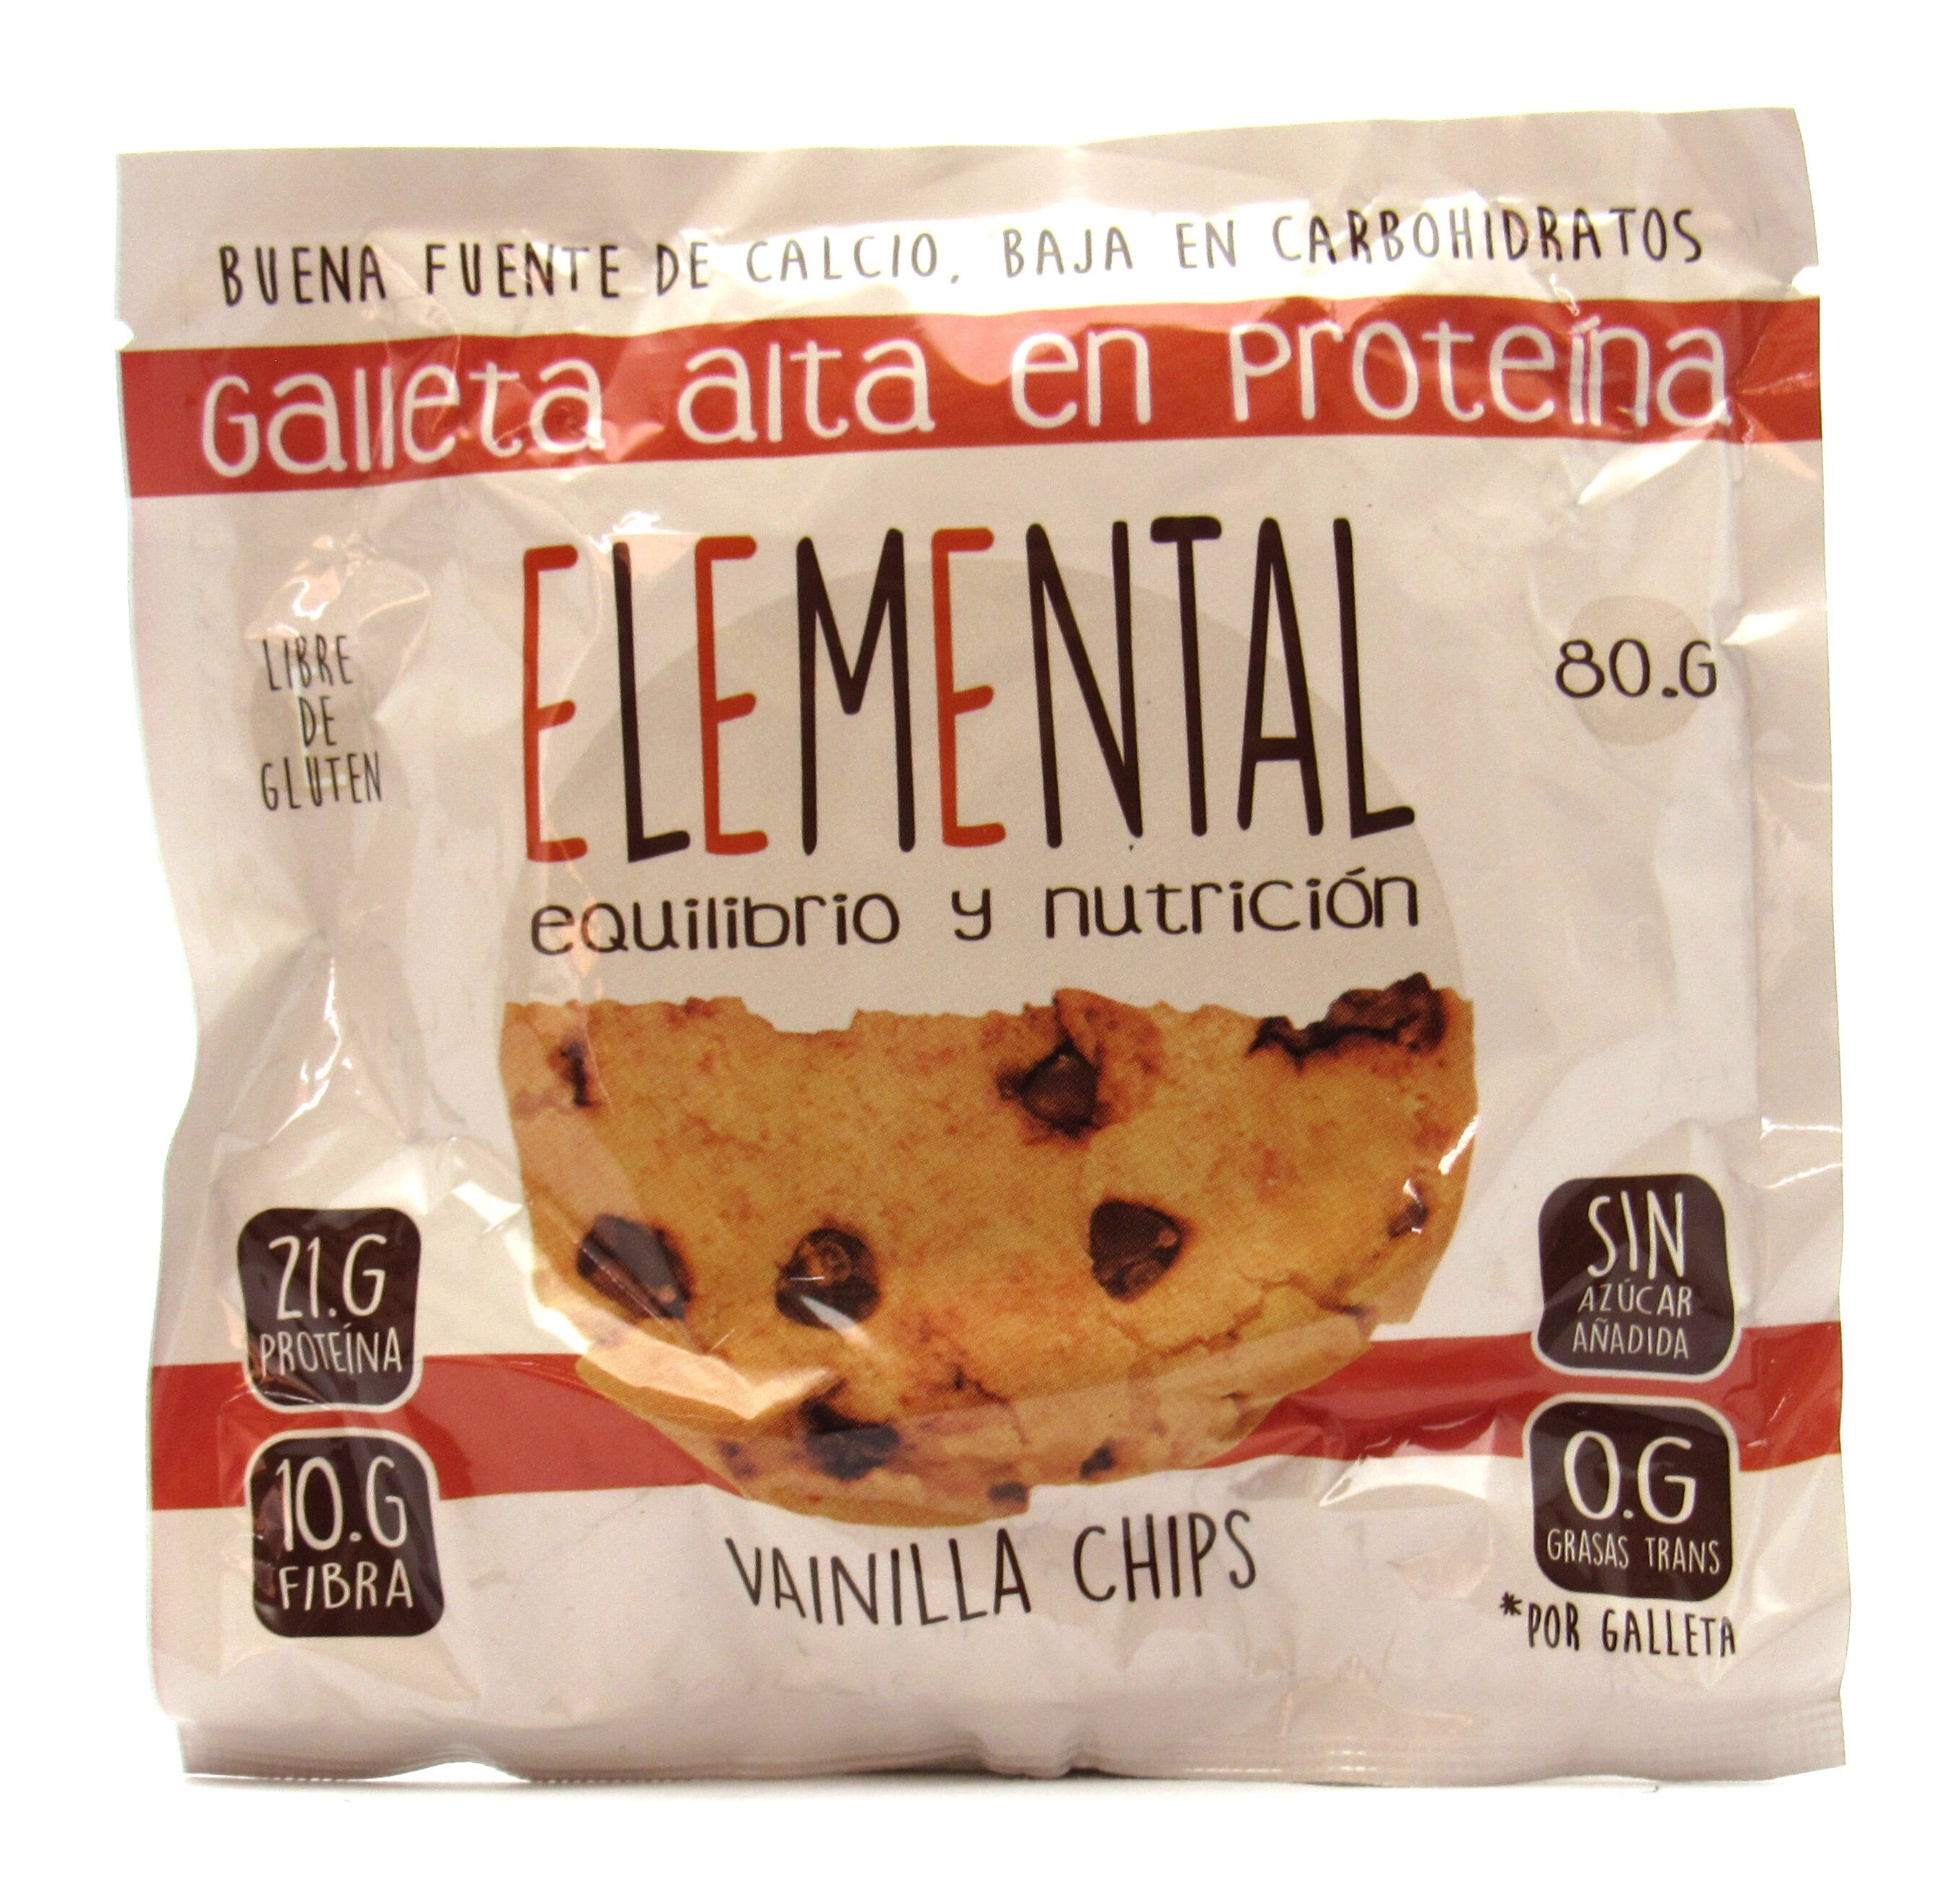 Galleta 80gr (ELEMENTAL)  Vainilla Chips